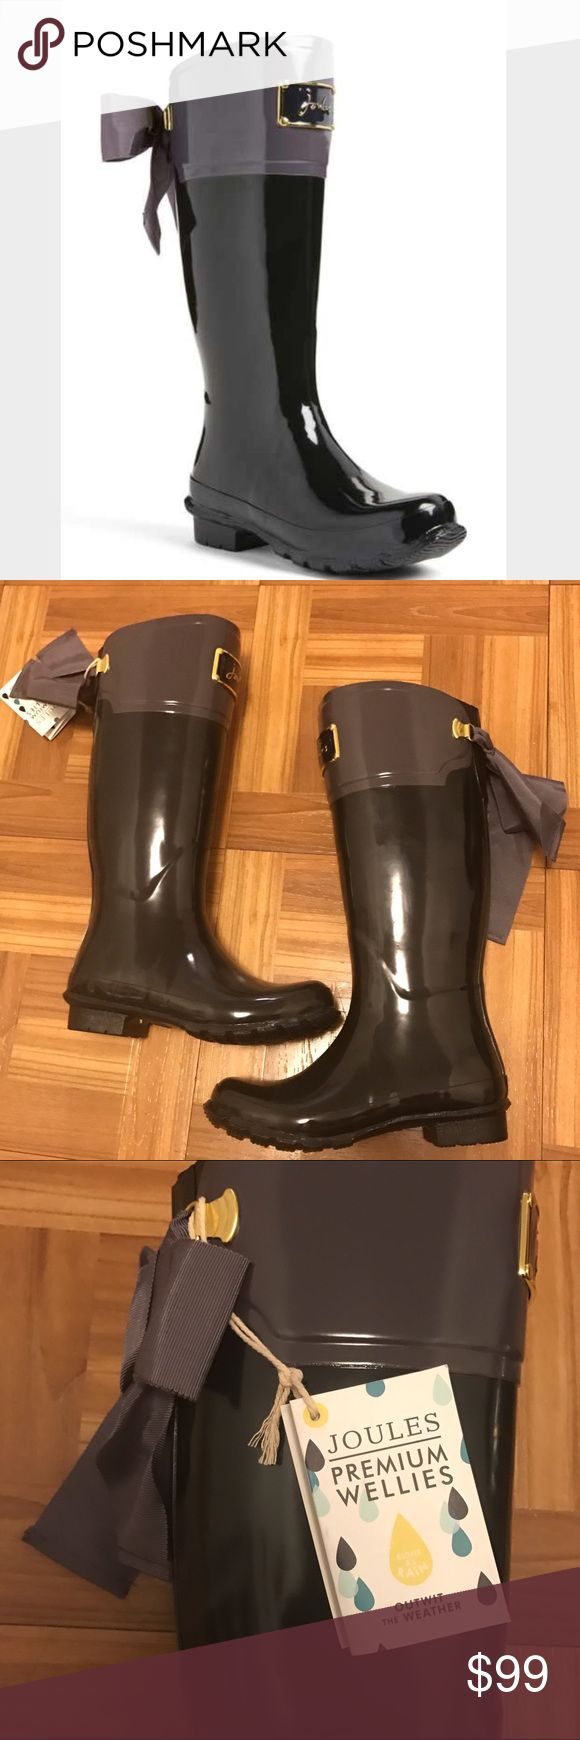 "JOULES Evedon rain boot bow Nordstrom Sz 6 NWT For sale is a brand new pair of Joules evedon rain boots in Sz 6, new with tags. The retail price is $165 at Nordstrom. A darling fitted rain boot features an embossed enamel signature plate and a glorious grosgrain bow—just think of it as riding boot in front, party boot in back. 1"" heel (size 10). 15"" boot shaft; 16"" calf circumference. Rubber upper/textile lining/rubber sole. Joules Shoes Winter & Rain Boots"